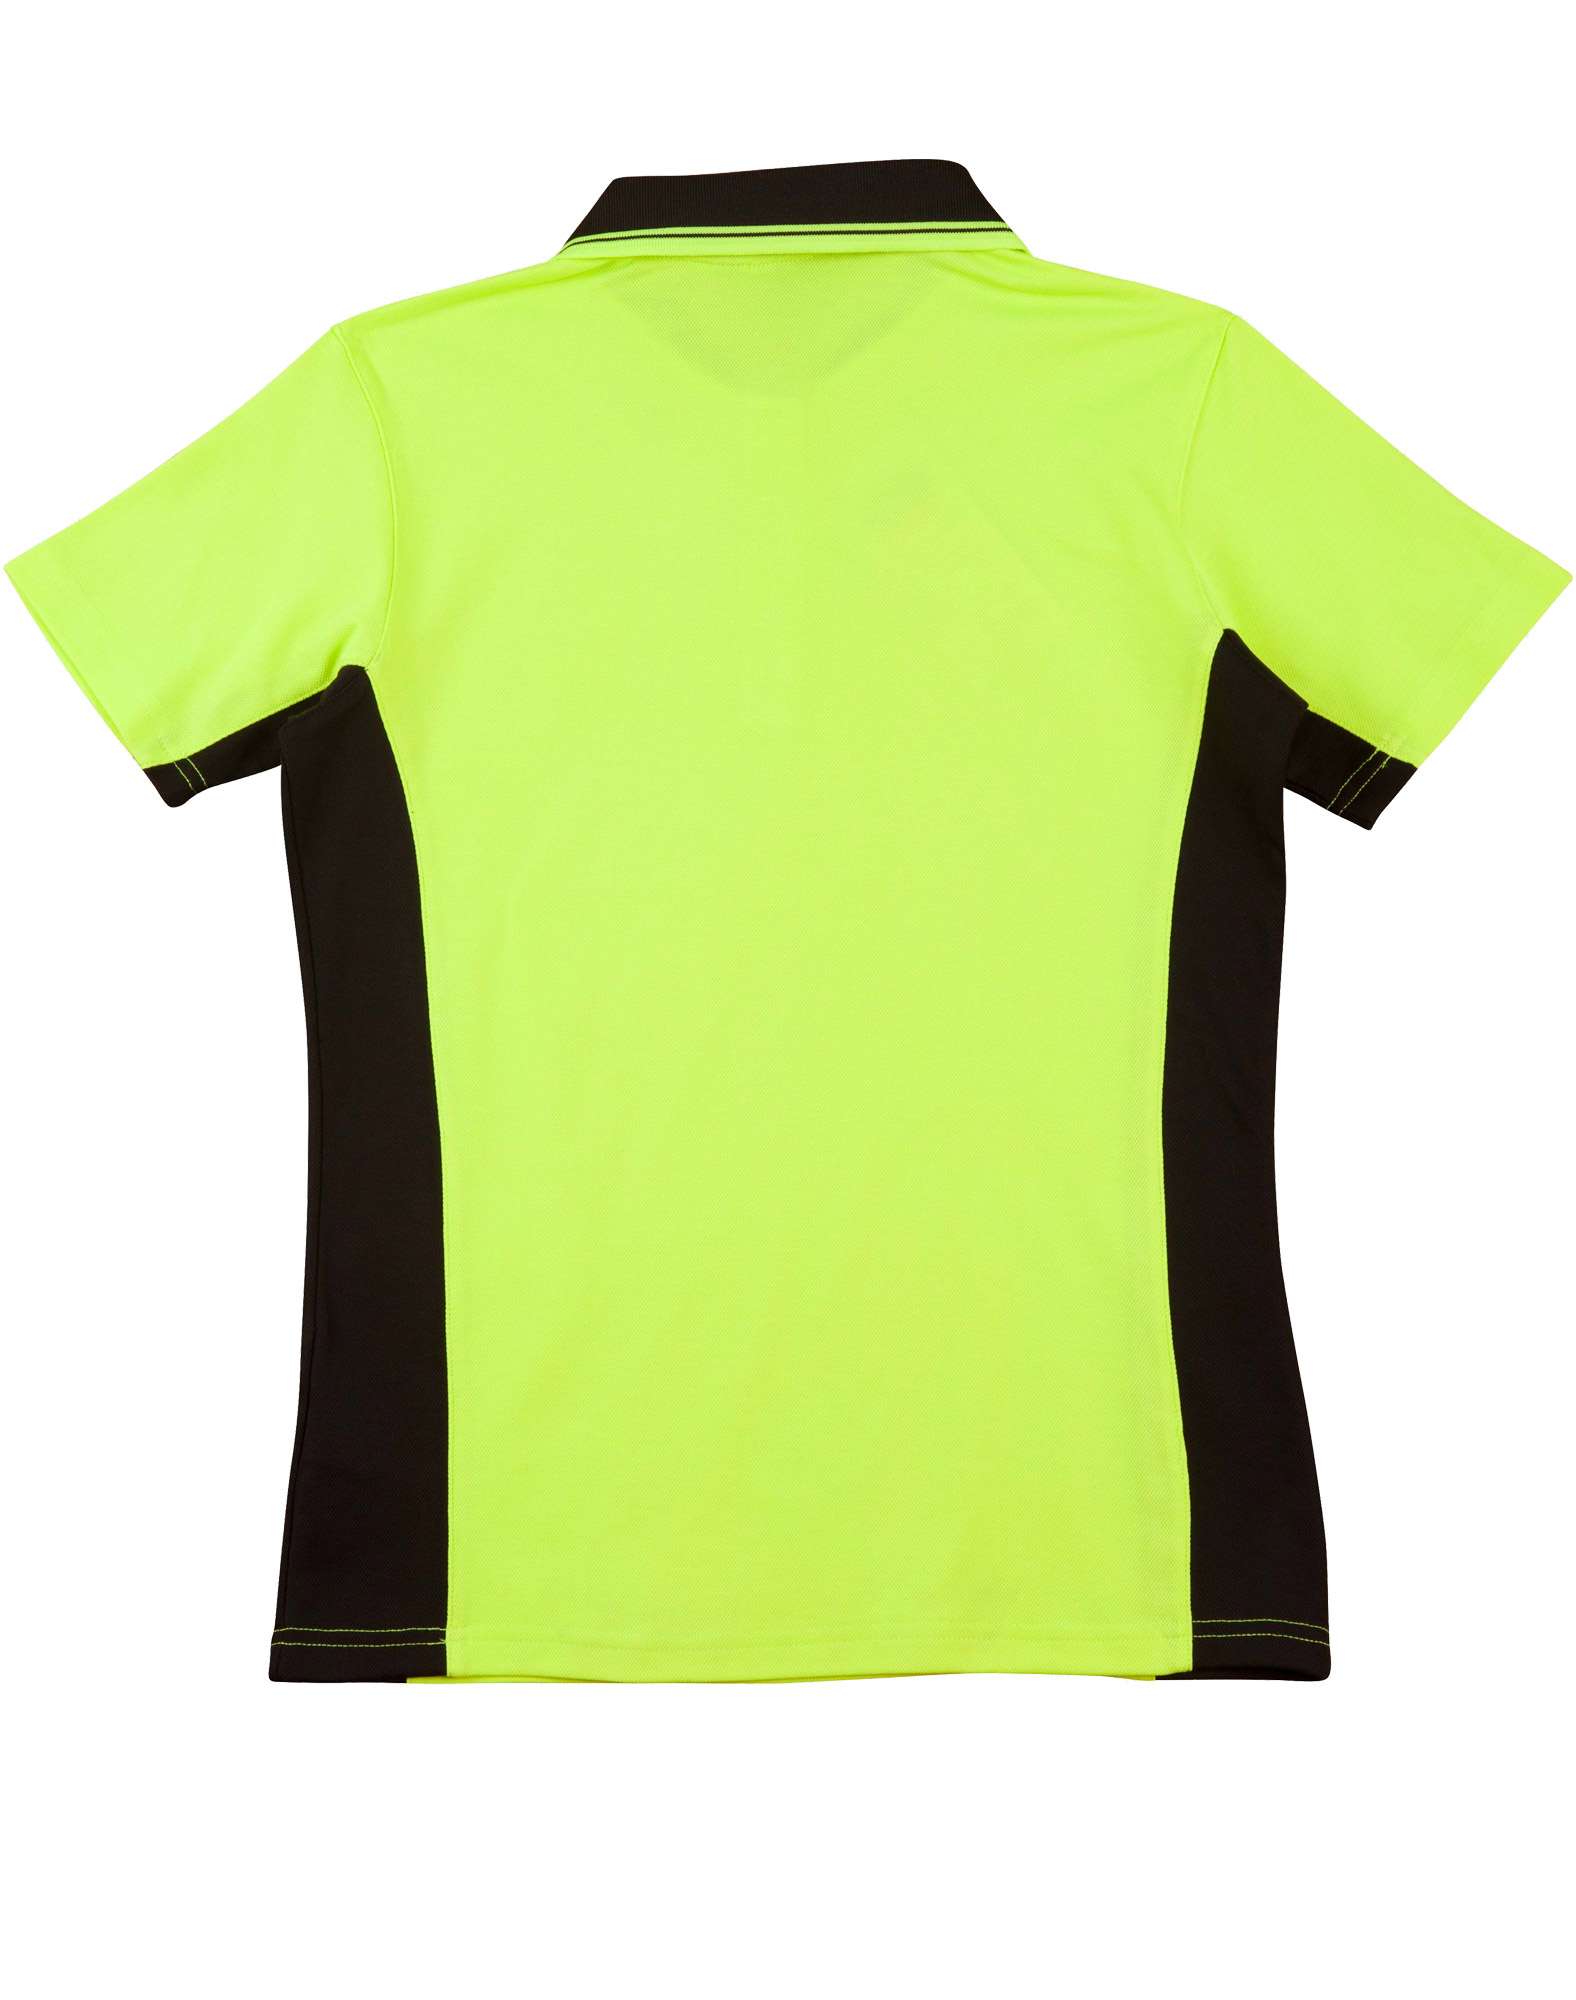 https://s3-ap-southeast-1.amazonaws.com/ws-imgs/WORKWEAR/SW23_Yellow.Black_Back_l.jpg